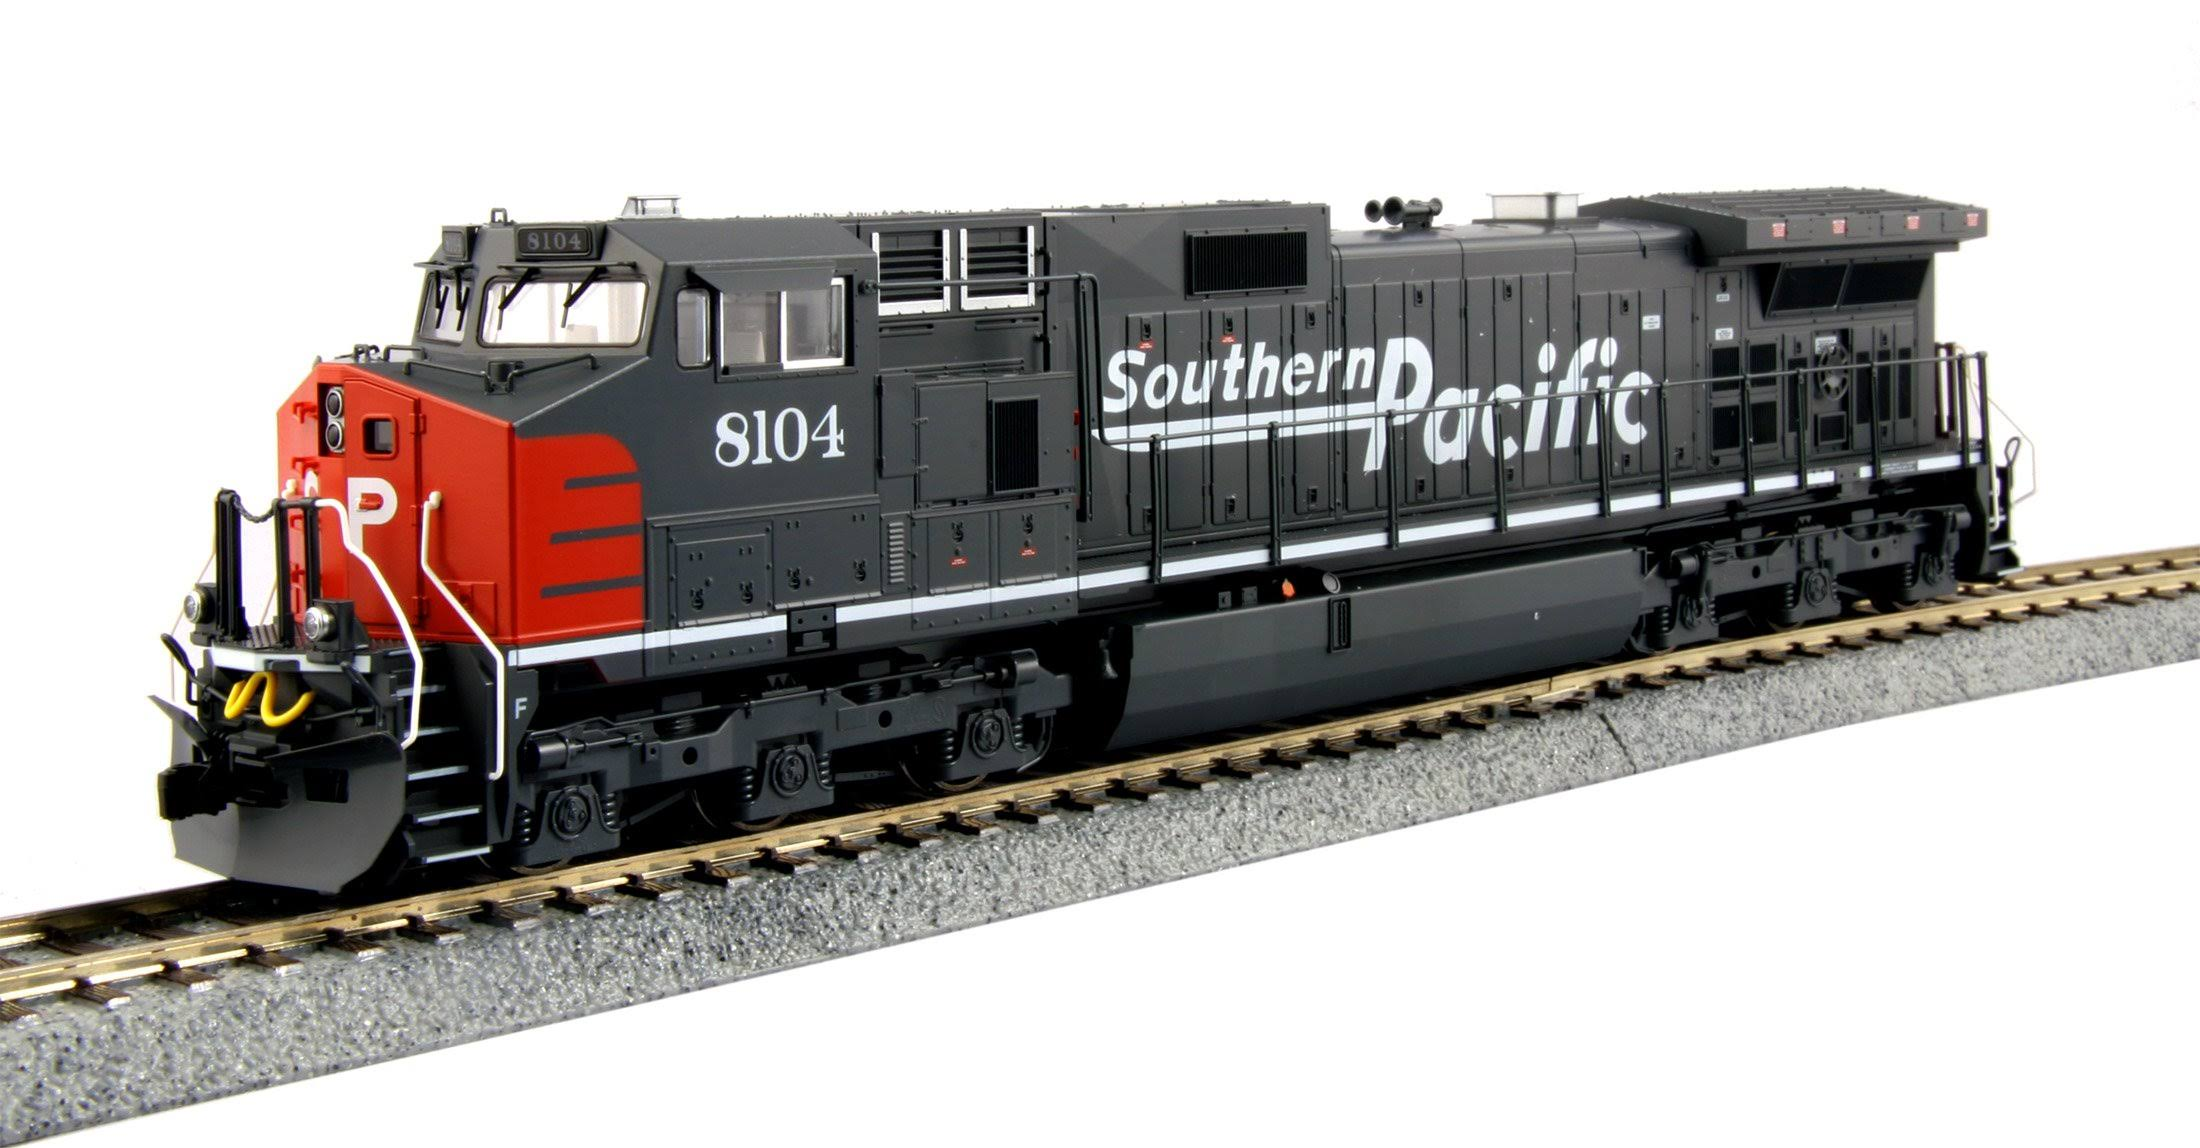 Kato C44-9W Locomotive Southern Pacific SP Train Model Toy - HO Scale